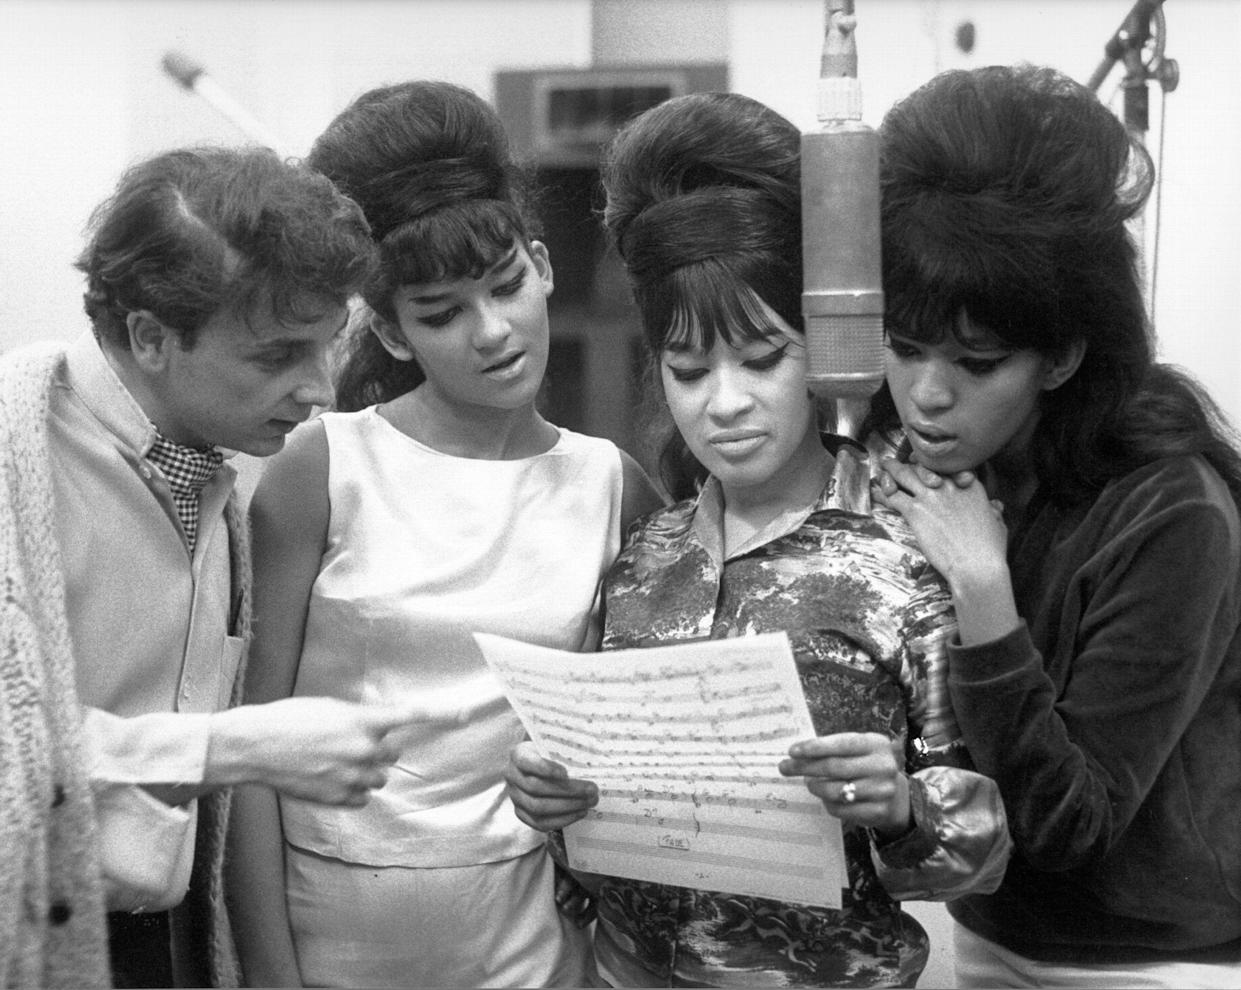 Phil Spector looked at sheet music with hit trio The Ronettes at Gold Star Studios in 1963. (Photo: Ray Avery via Getty Images)